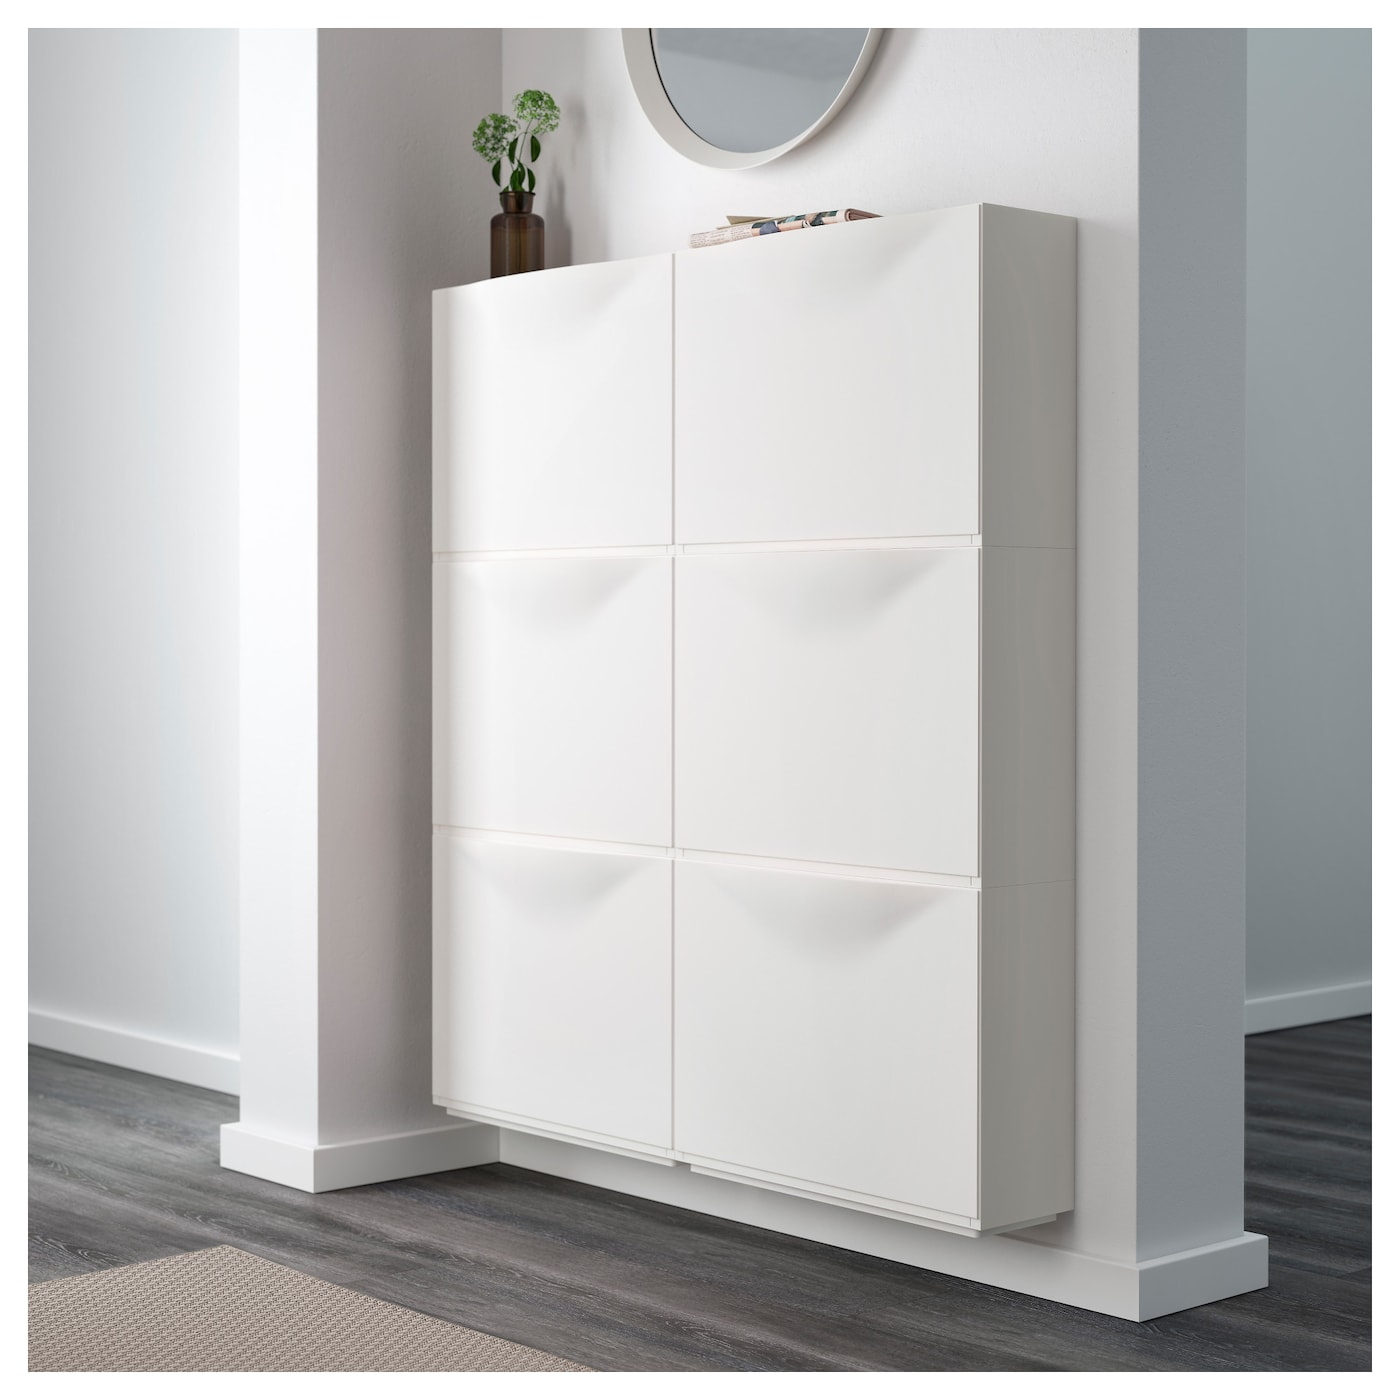 trones armoire chaussures rangement blanc 51x39 cm ikea. Black Bedroom Furniture Sets. Home Design Ideas